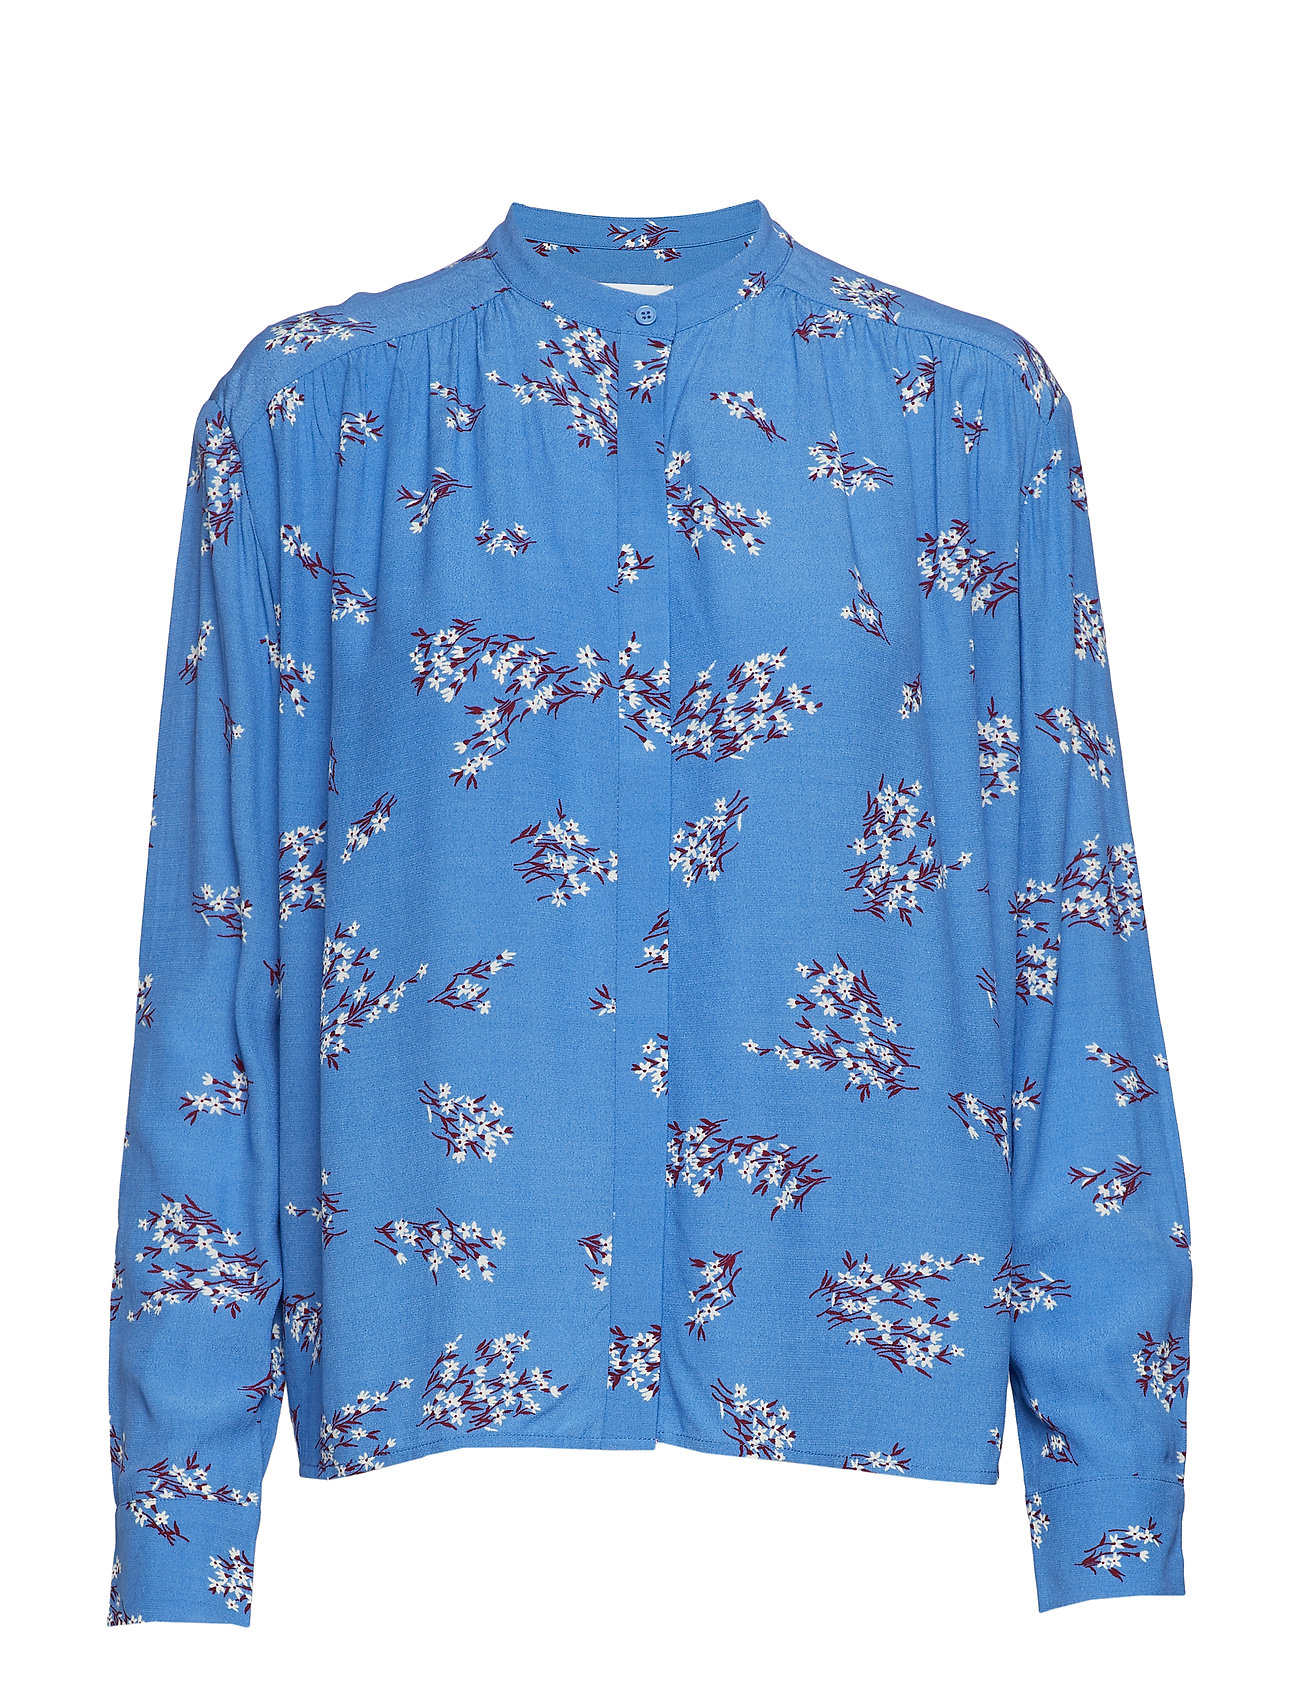 Samsøe & Samsøe Elmy shirt aop 10864 - BLUE BREEZE